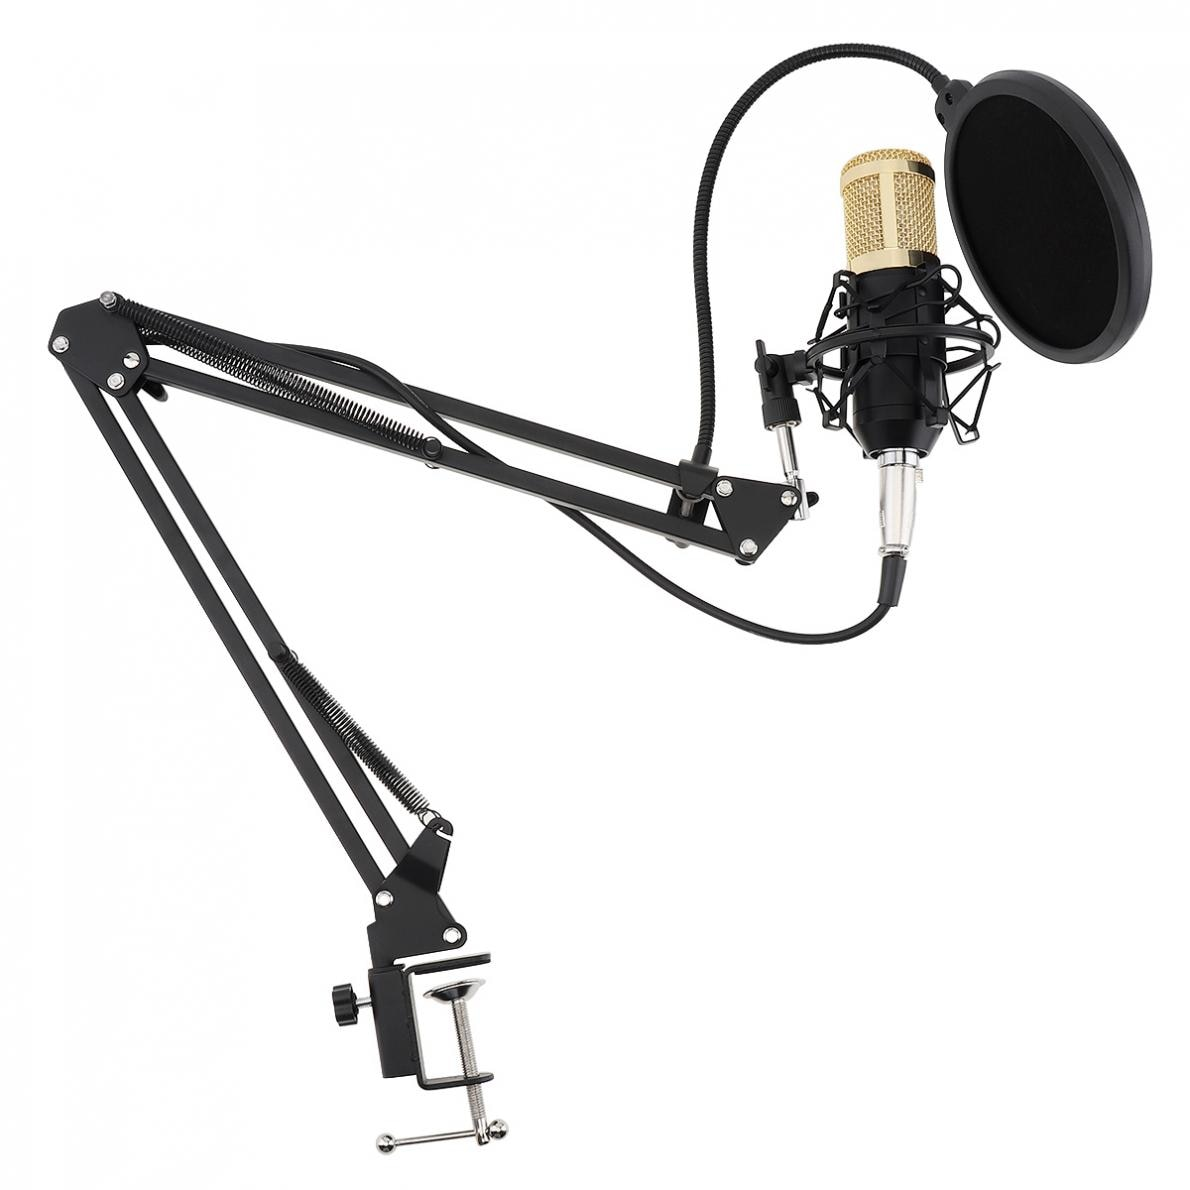 BM-800 Live Microphone with Phantom Power Supply Karaoke Condenser Microphone Suit Kits for Computer / Recording / Studio enlarge